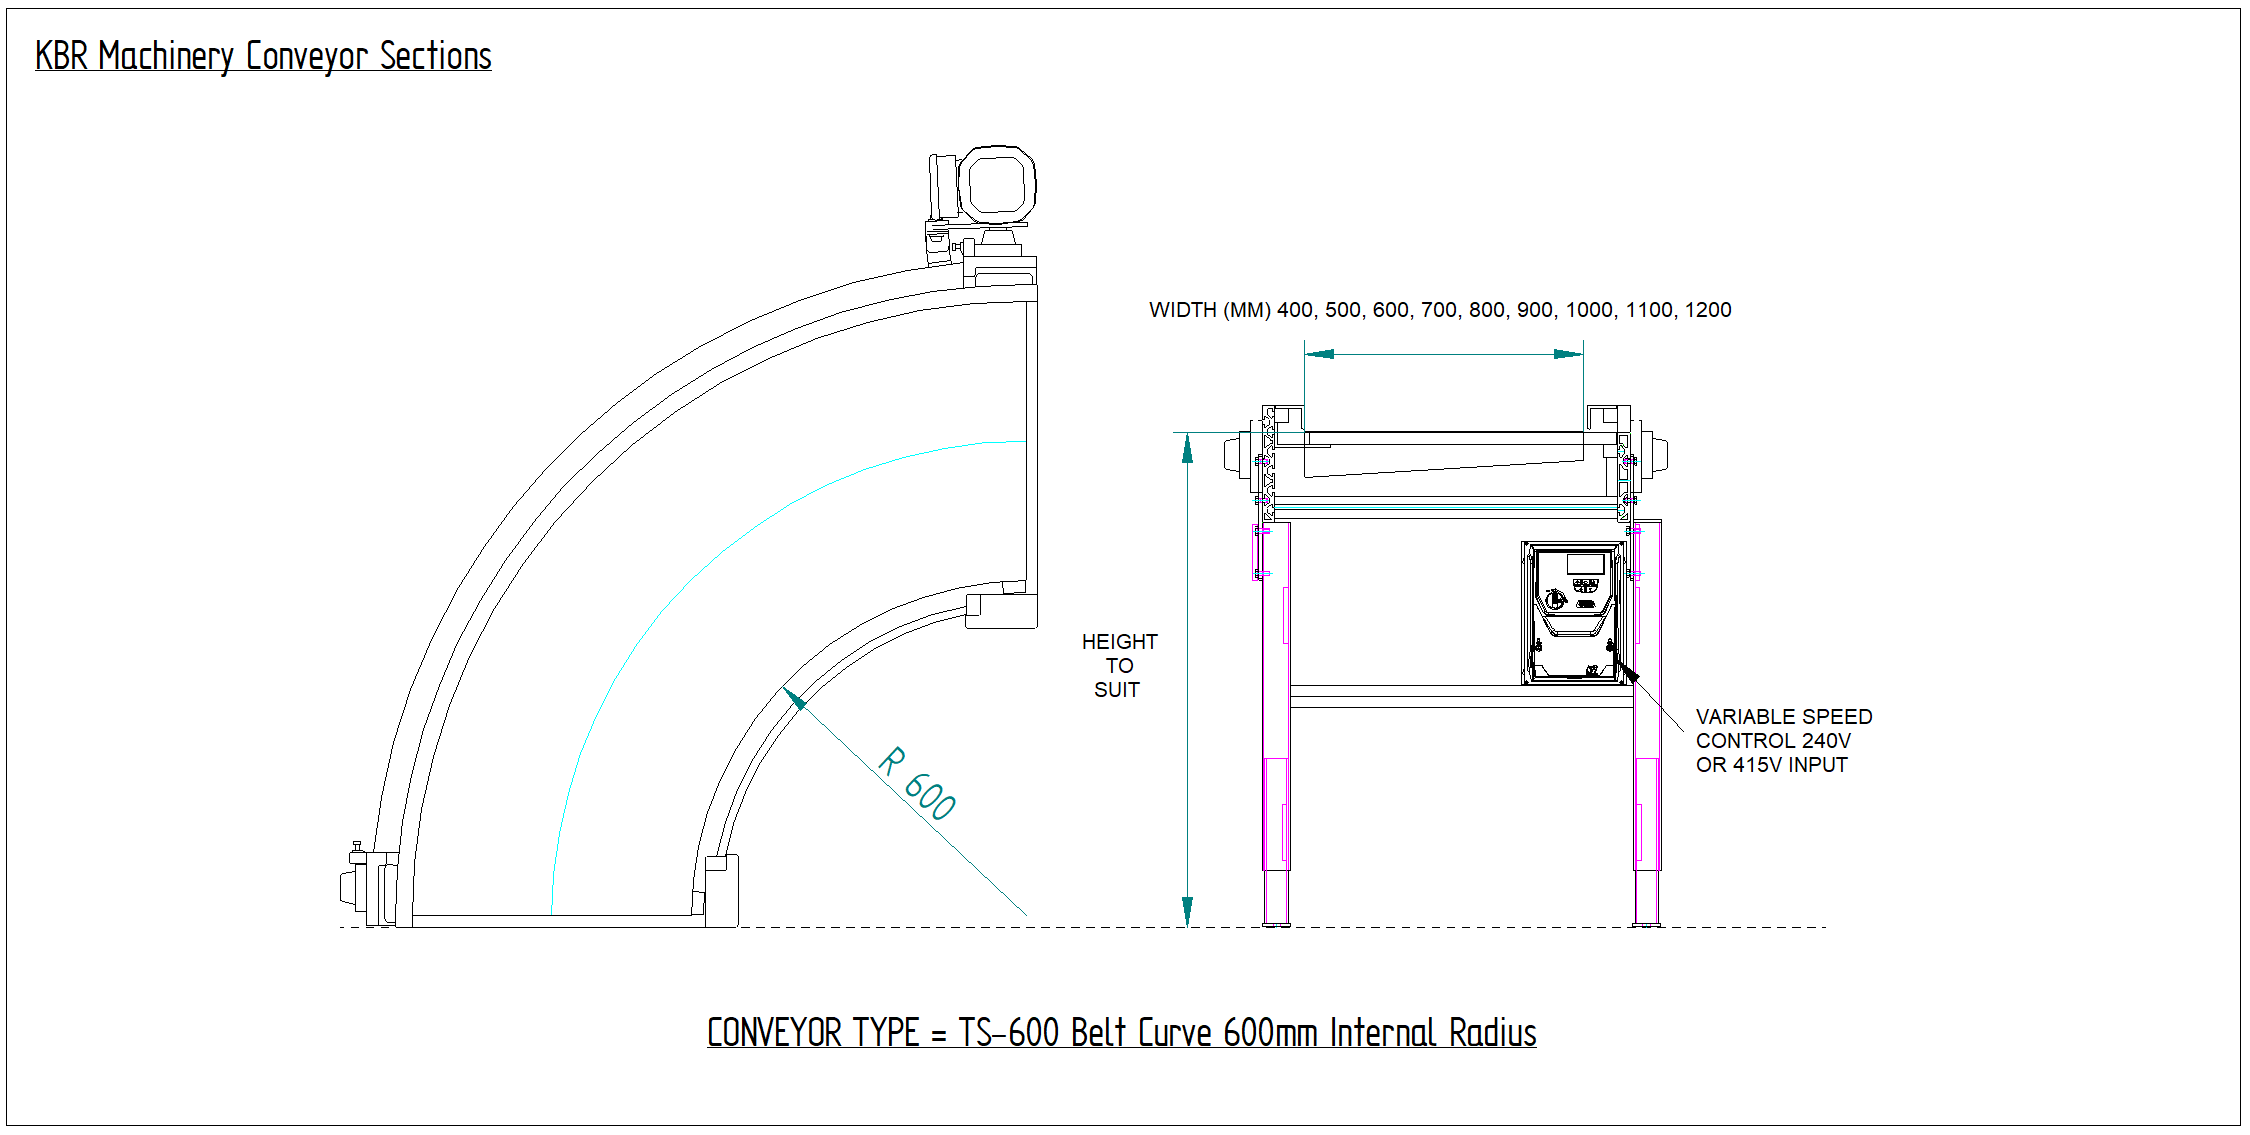 Curve Conveyor Drawing Bend CAD Drawing 2D Conveyor Curve Schematic